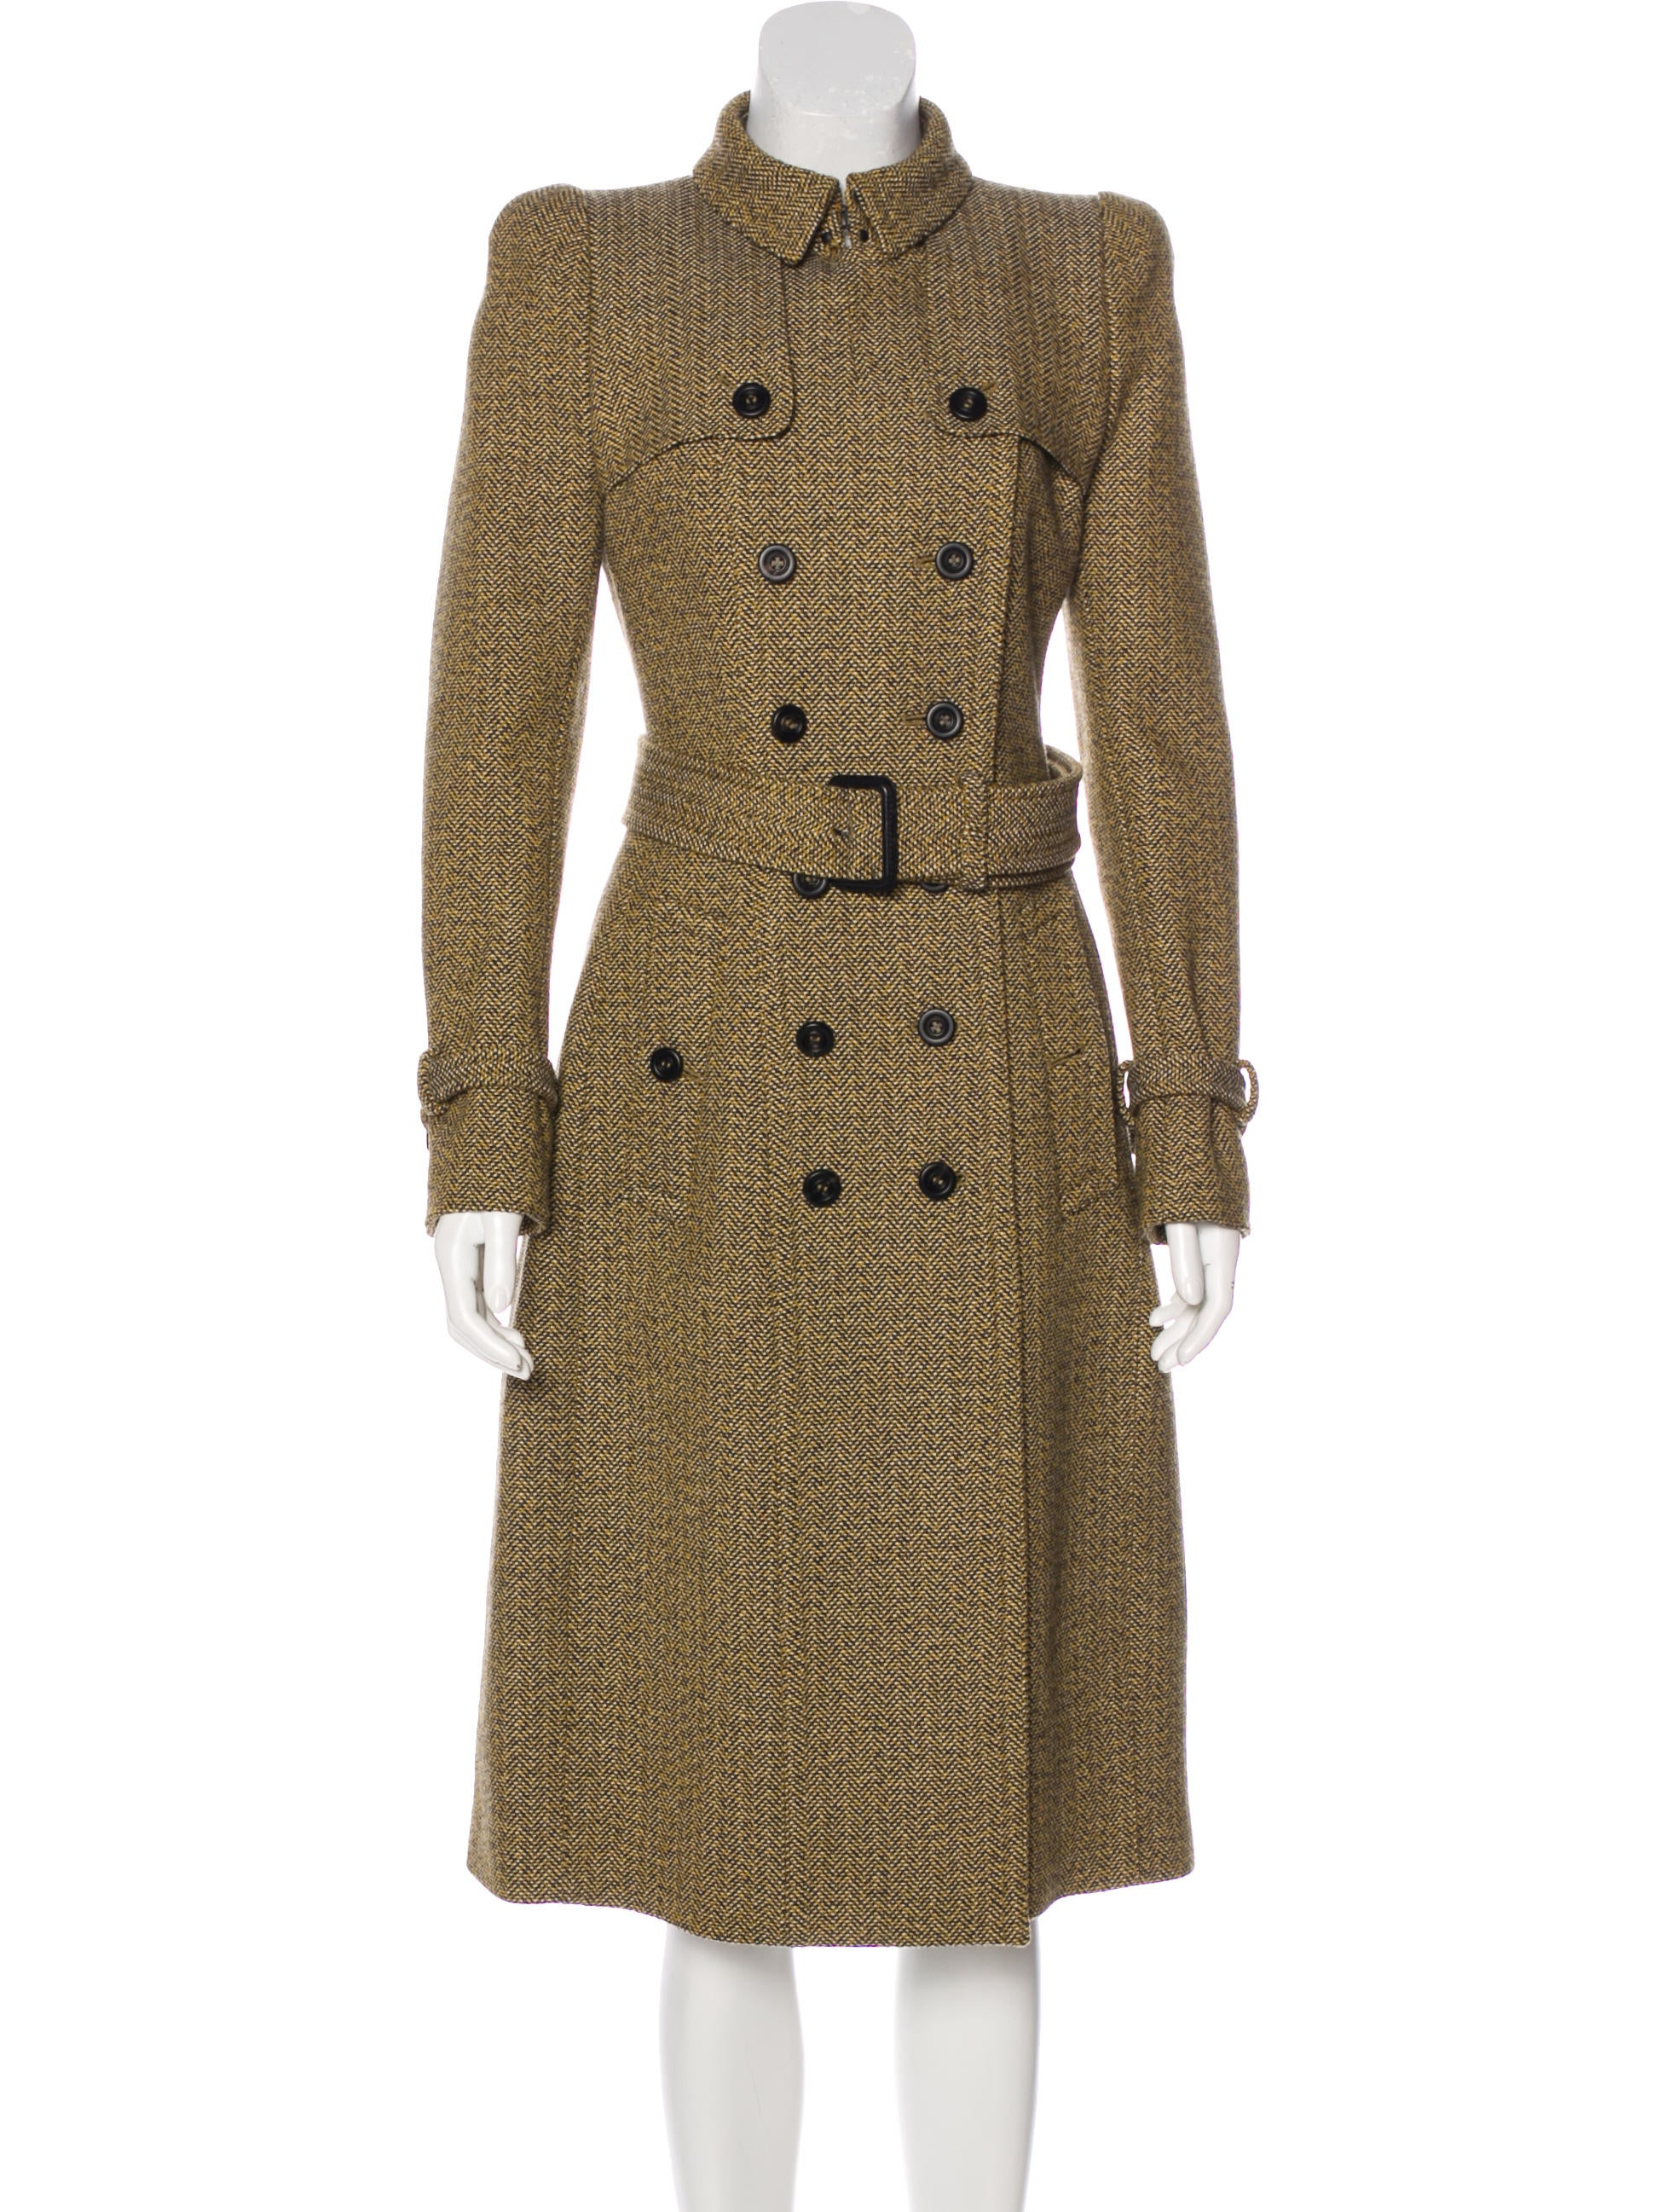 Find trench style wool coat at ShopStyle. Shop the latest collection of trench style wool coat from the most popular stores - all in one place.